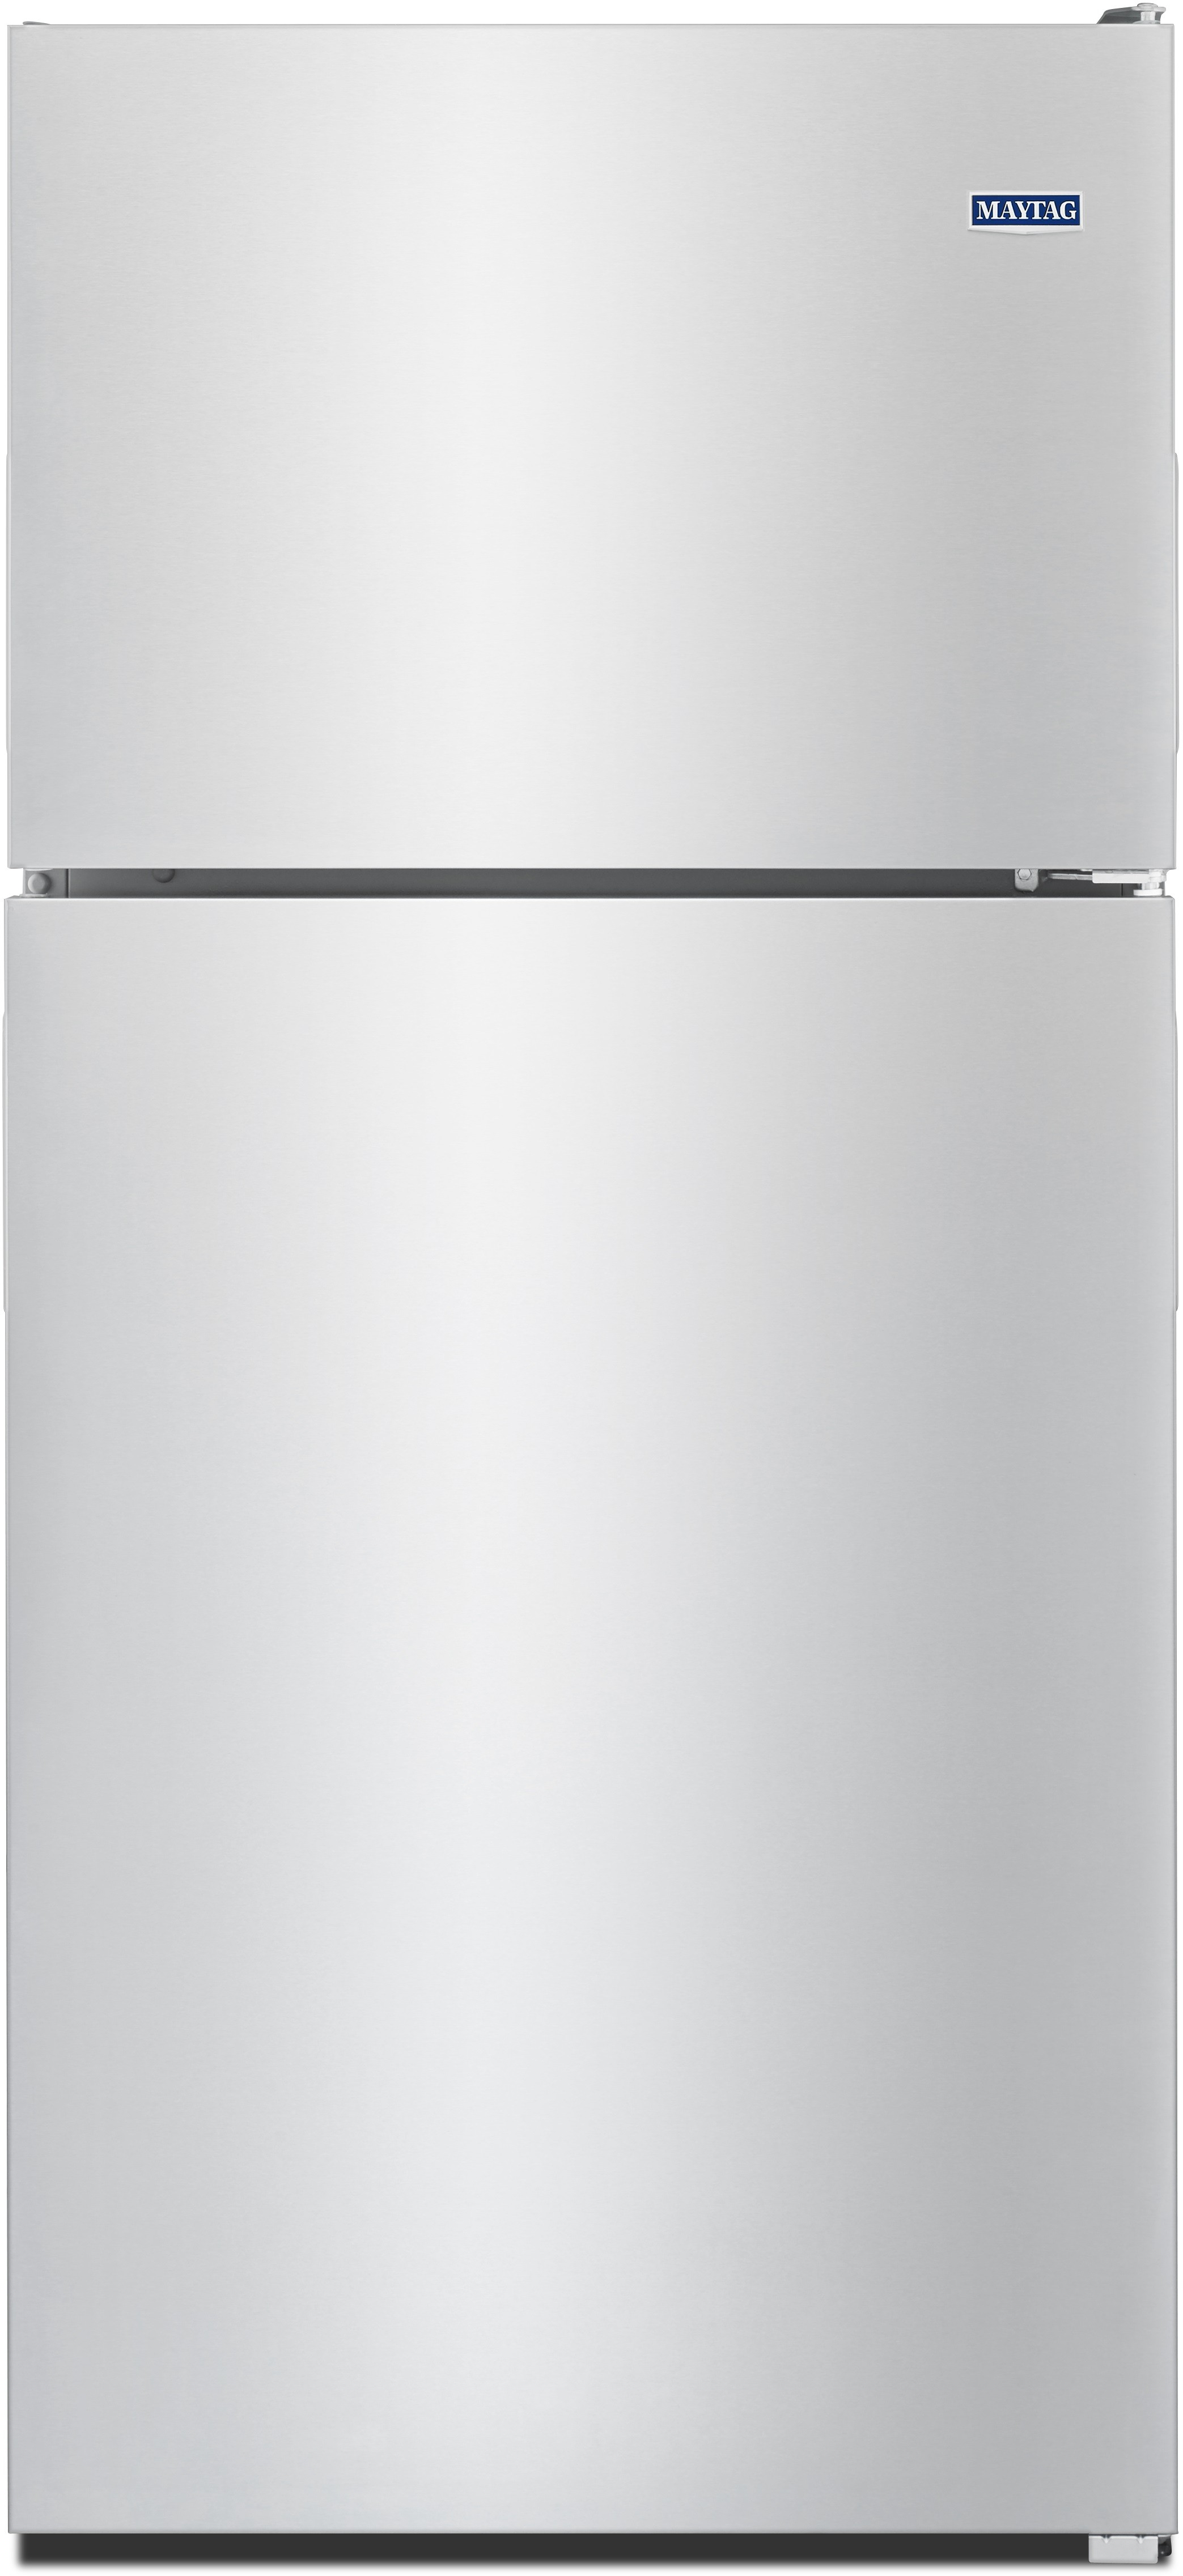 Www Refrigerators Buy A Maytag Refrigerator In Black White Stainless Steel